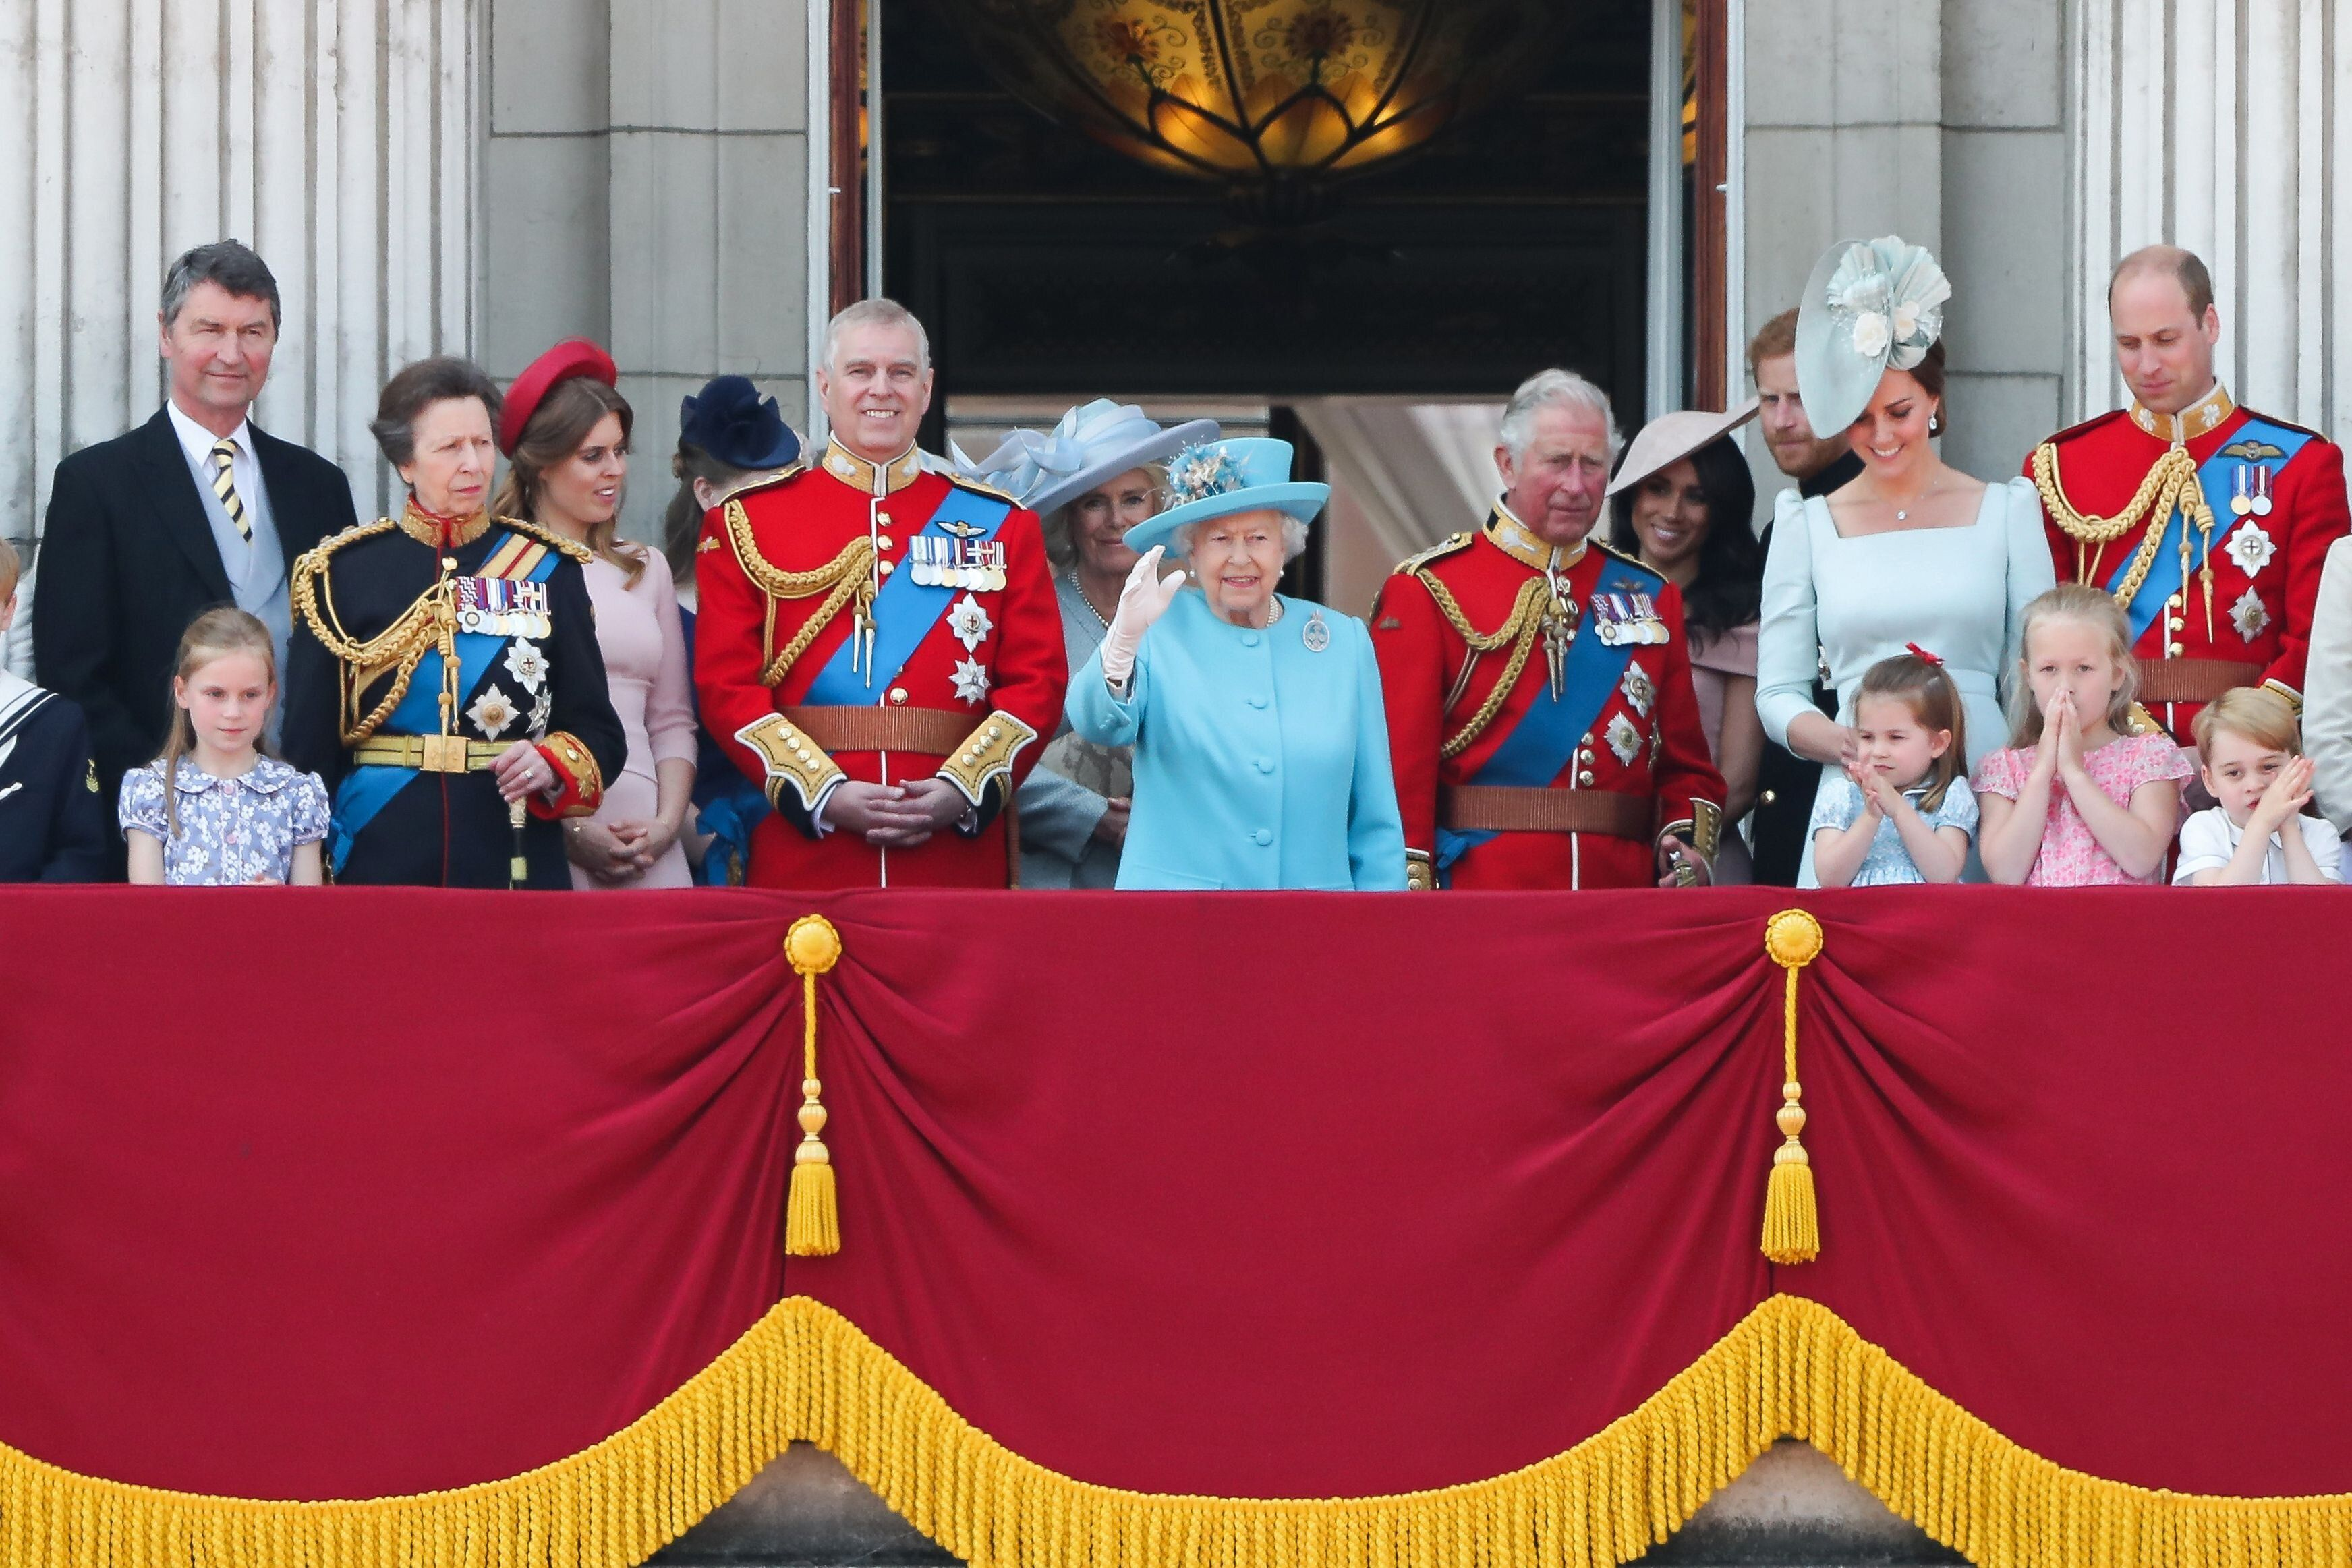 Prince Harry and Meghan Markle pictured standing at the back at the 2018 Trooping the Colour balcony, while Prince Andrew stands next to the Queen